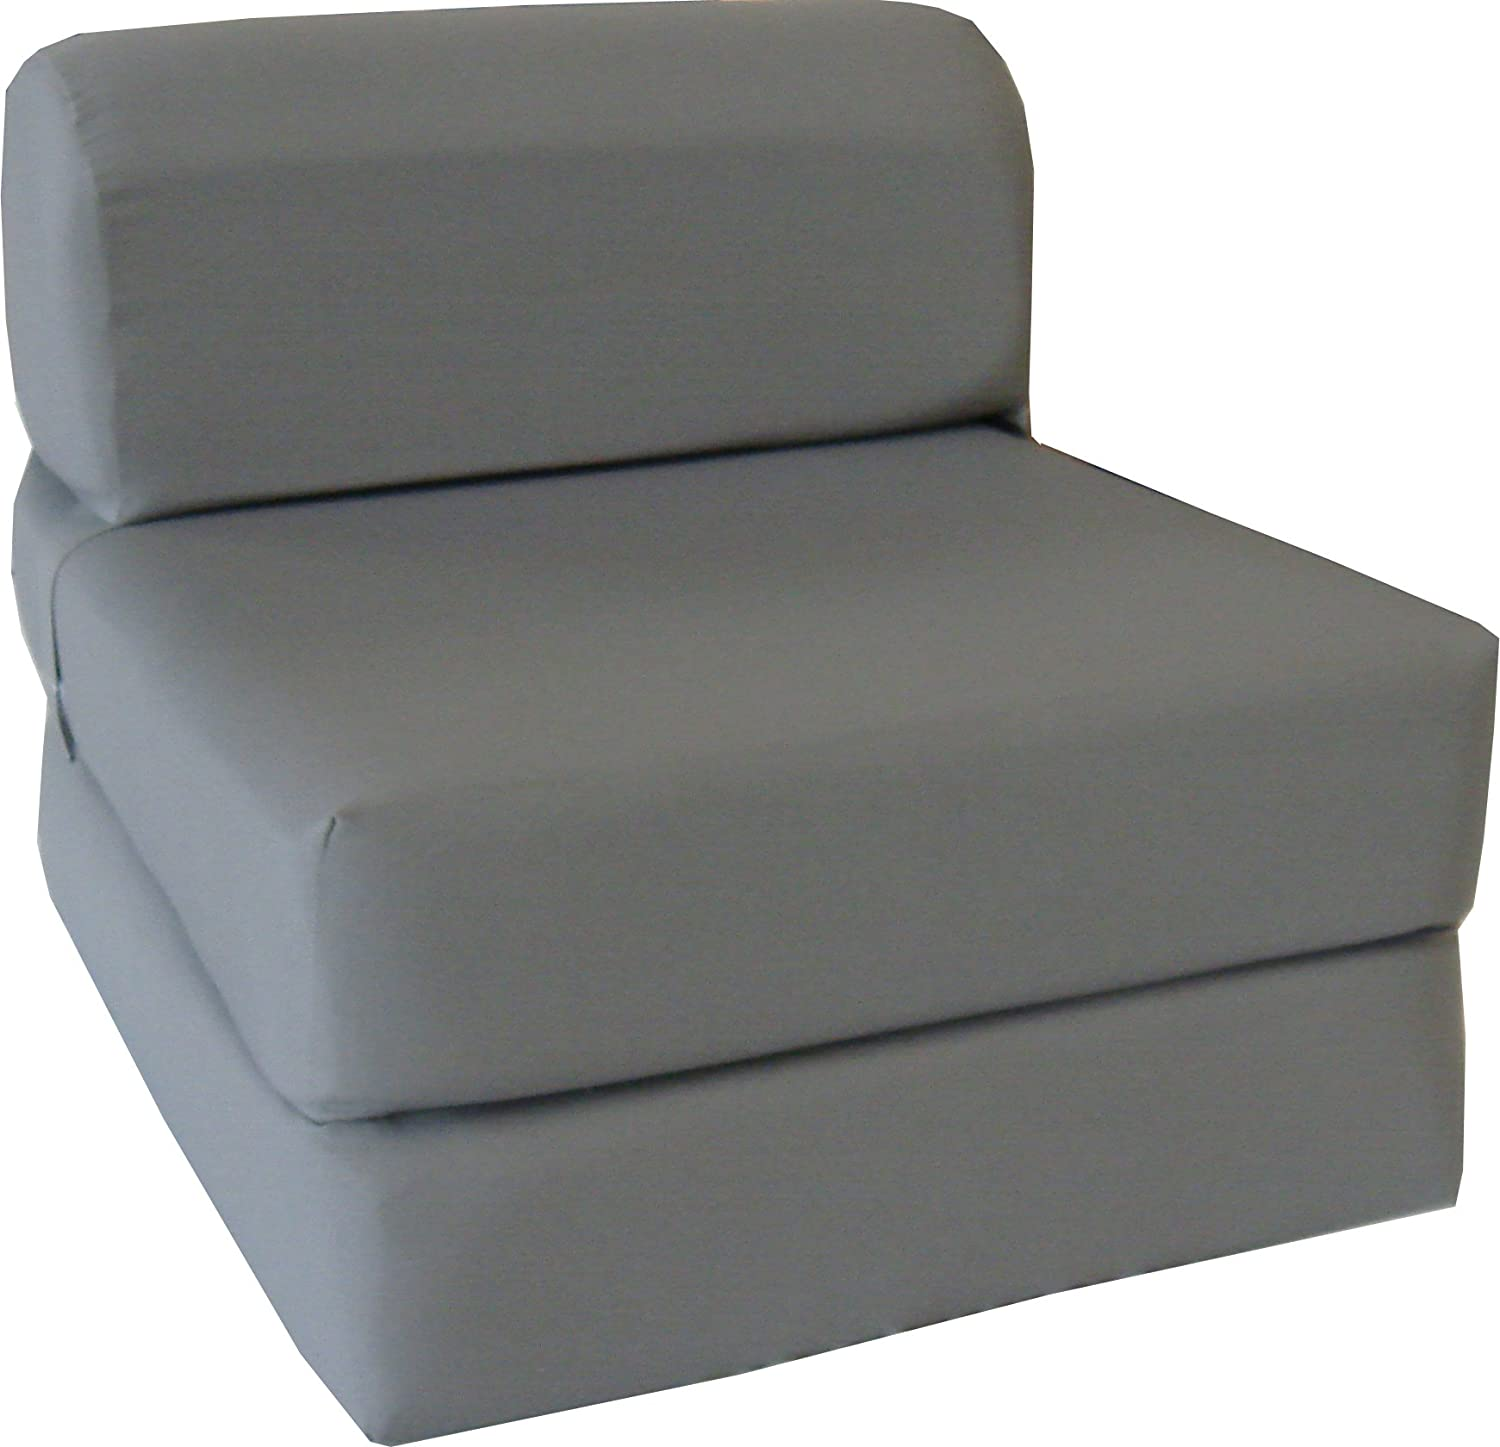 jordan bed chair products futon mattress harley furniture sofa